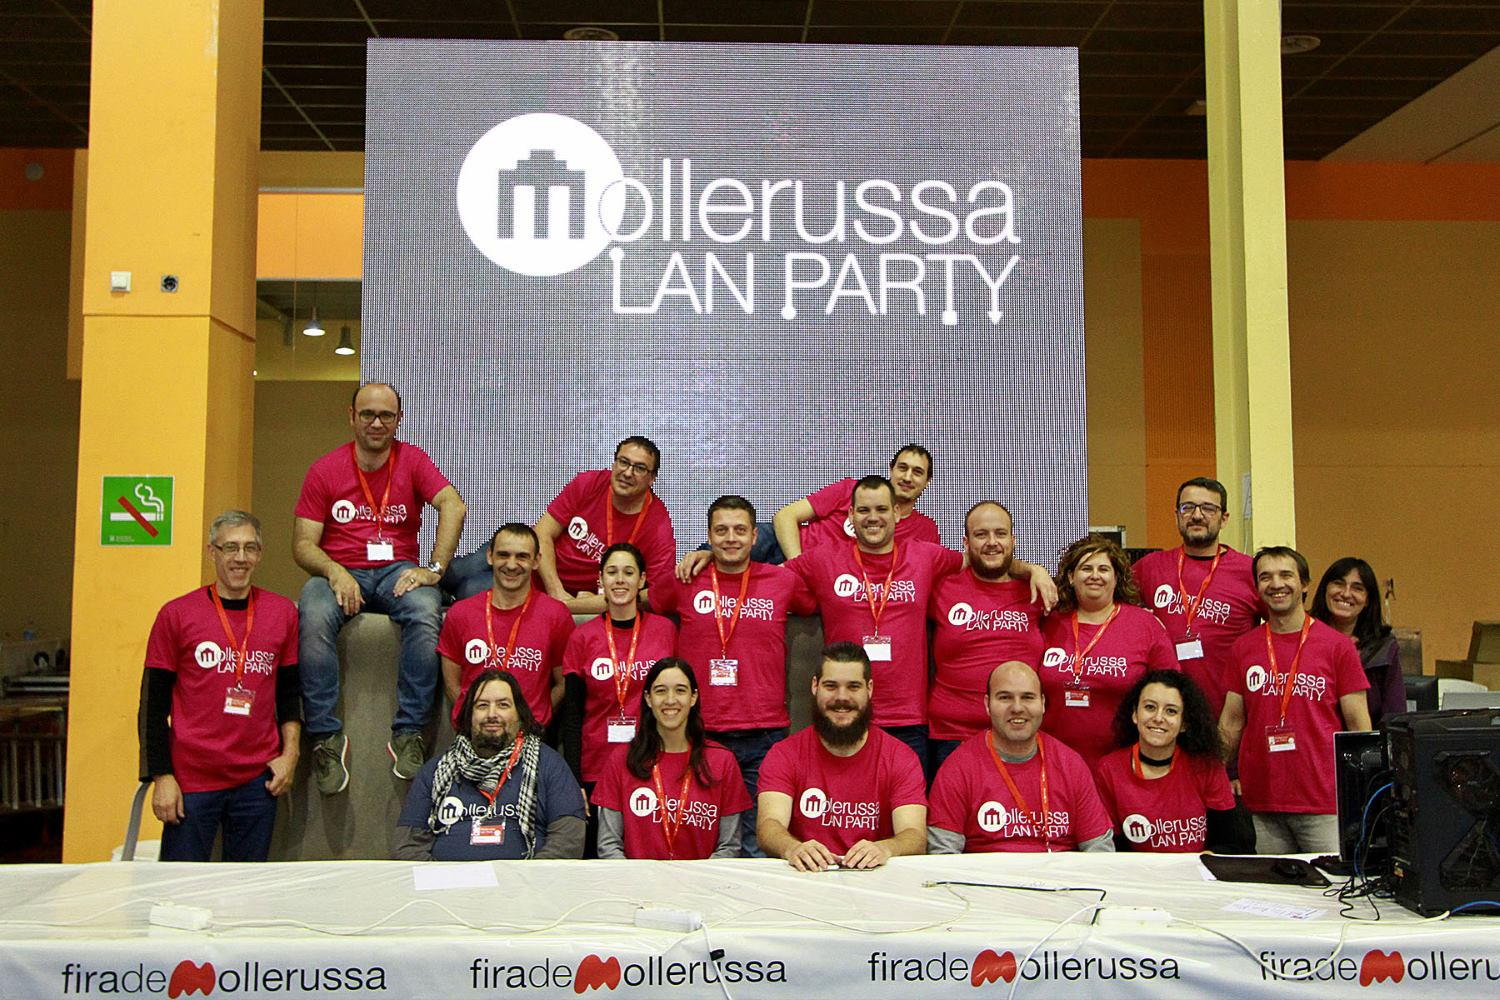 Team Mollerussa Lan Party 2017